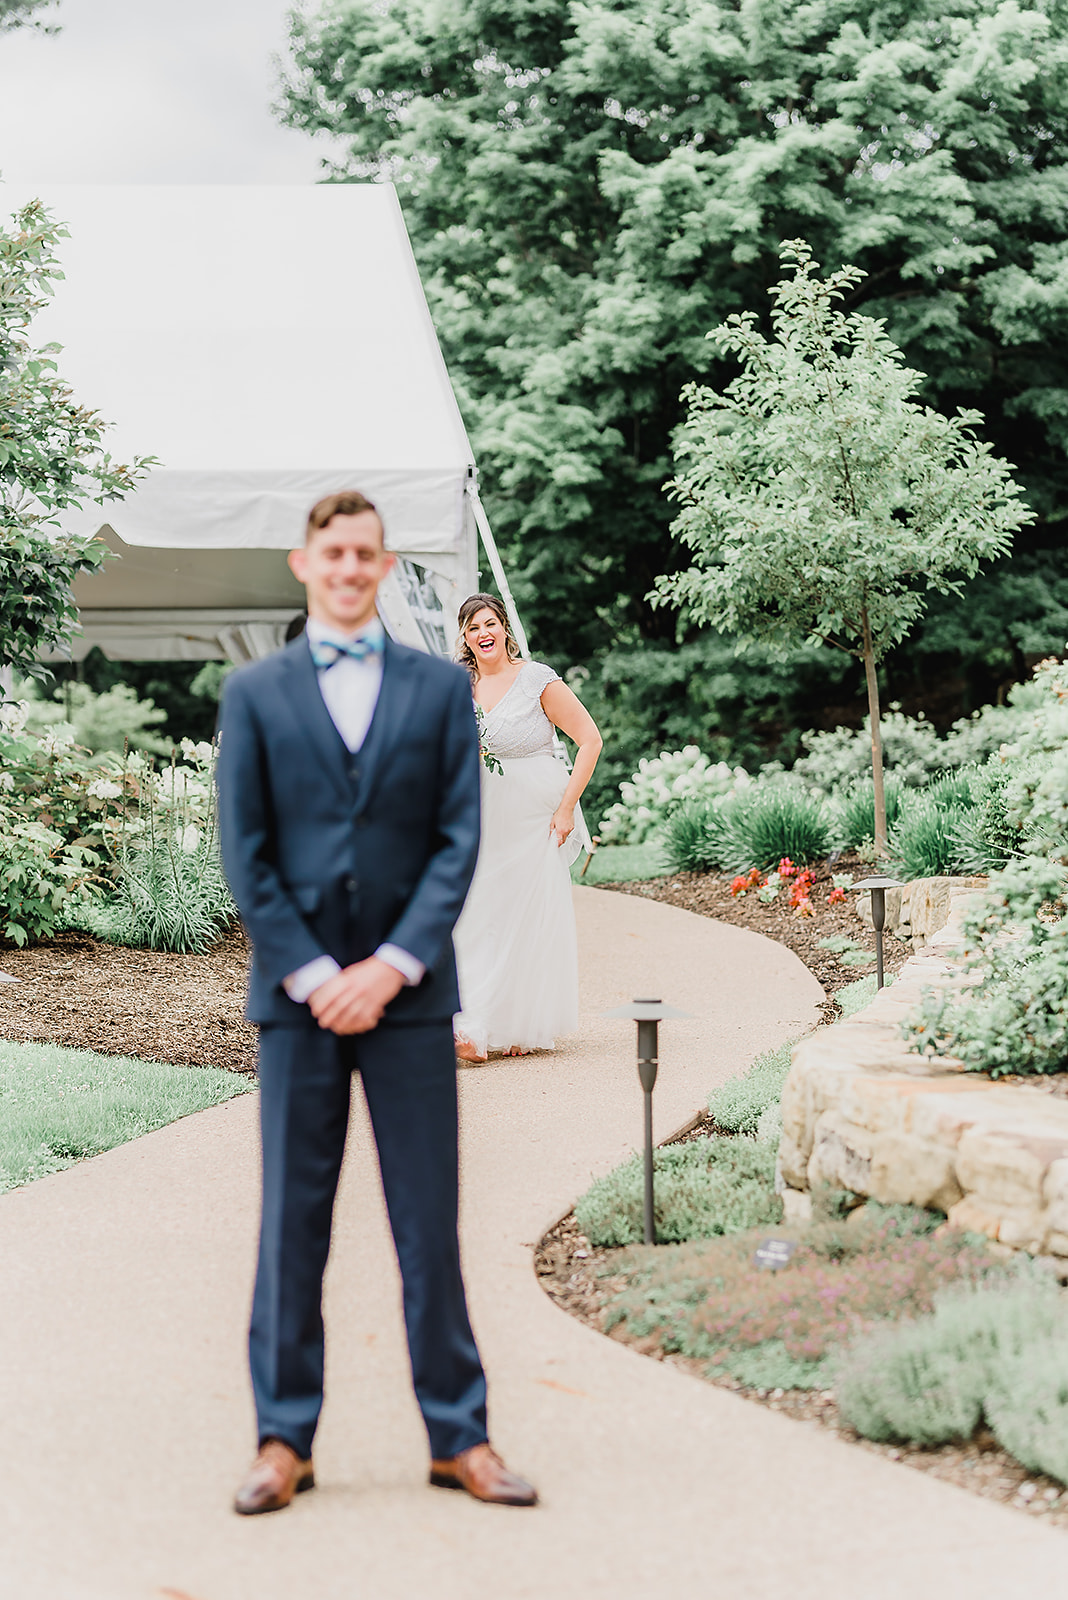 pittsburgh_botanic_gardens_summer_colors_wedding_first_look_bespoke_and_beloved_events